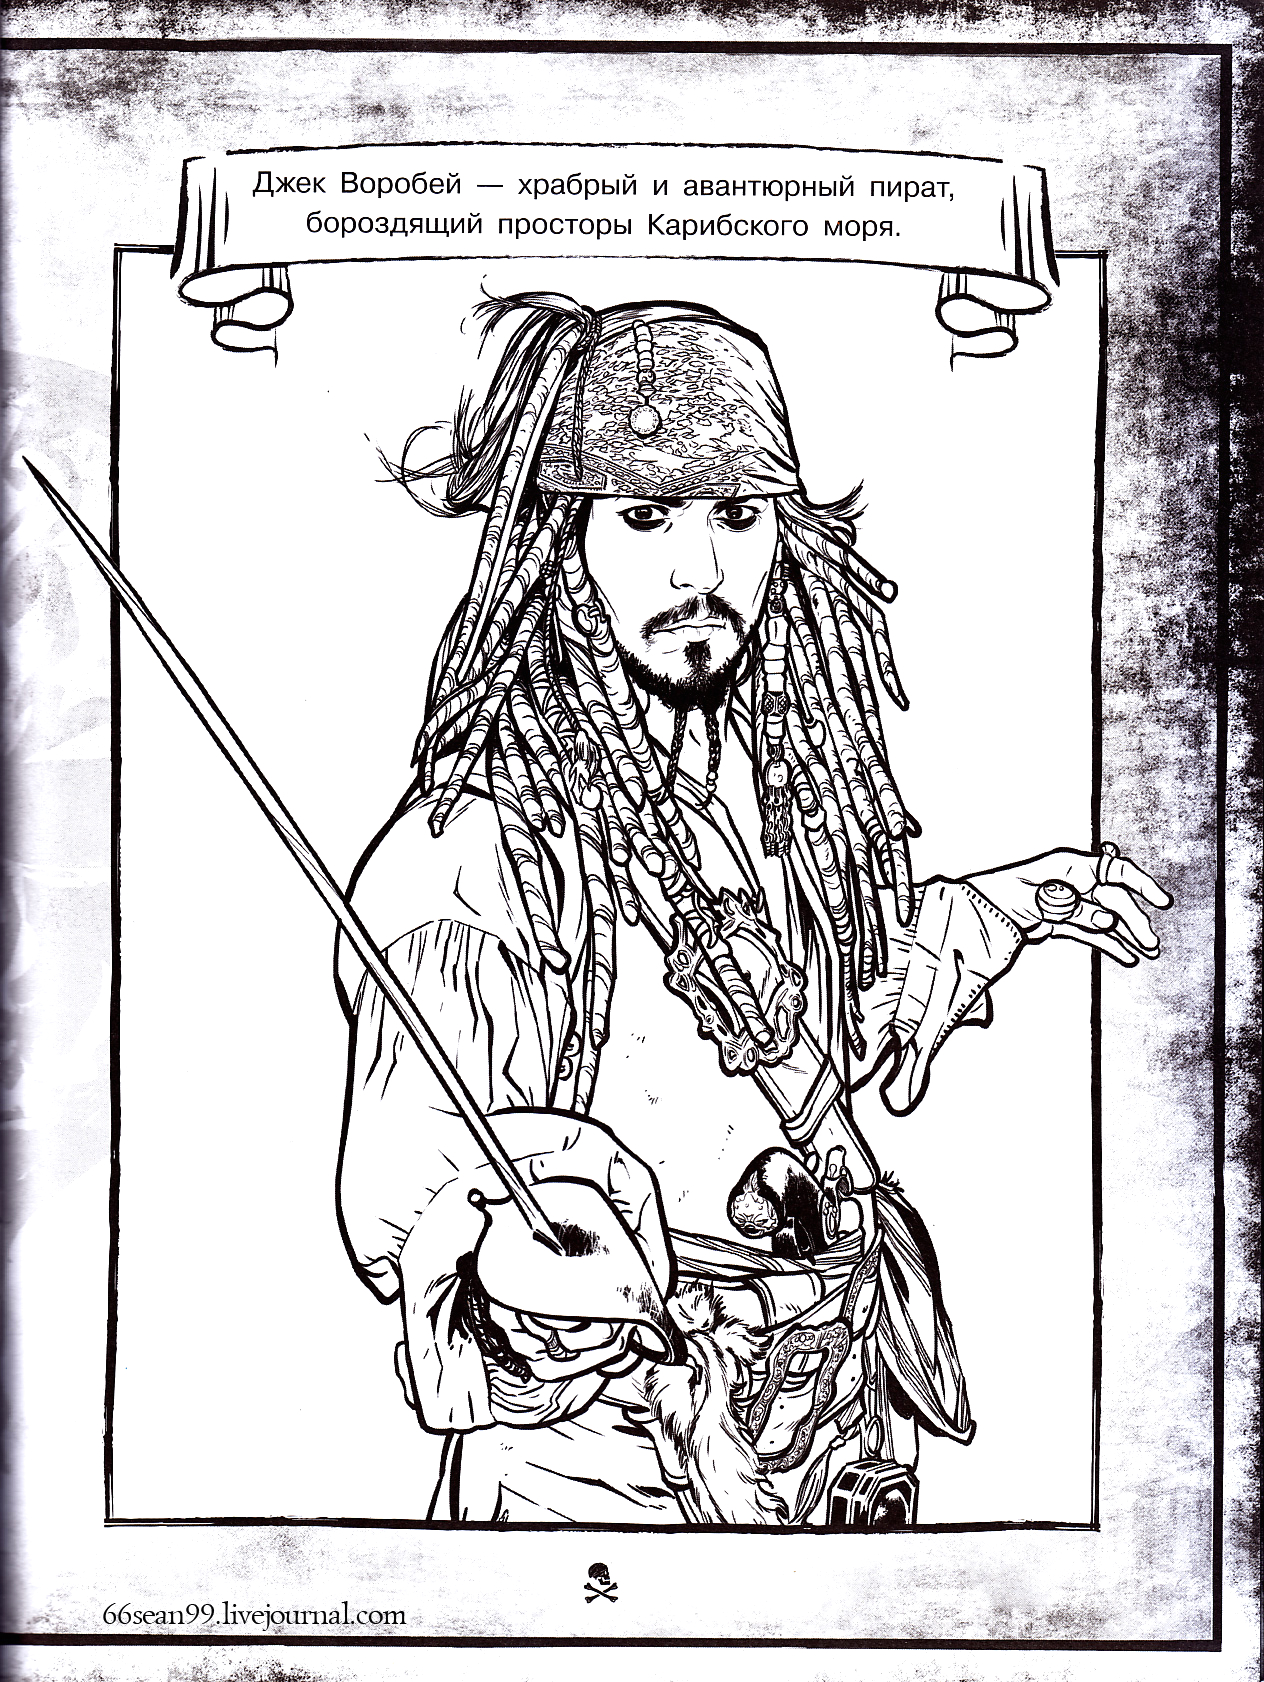 198 pirates of the caribbean coloring pages including poc 5